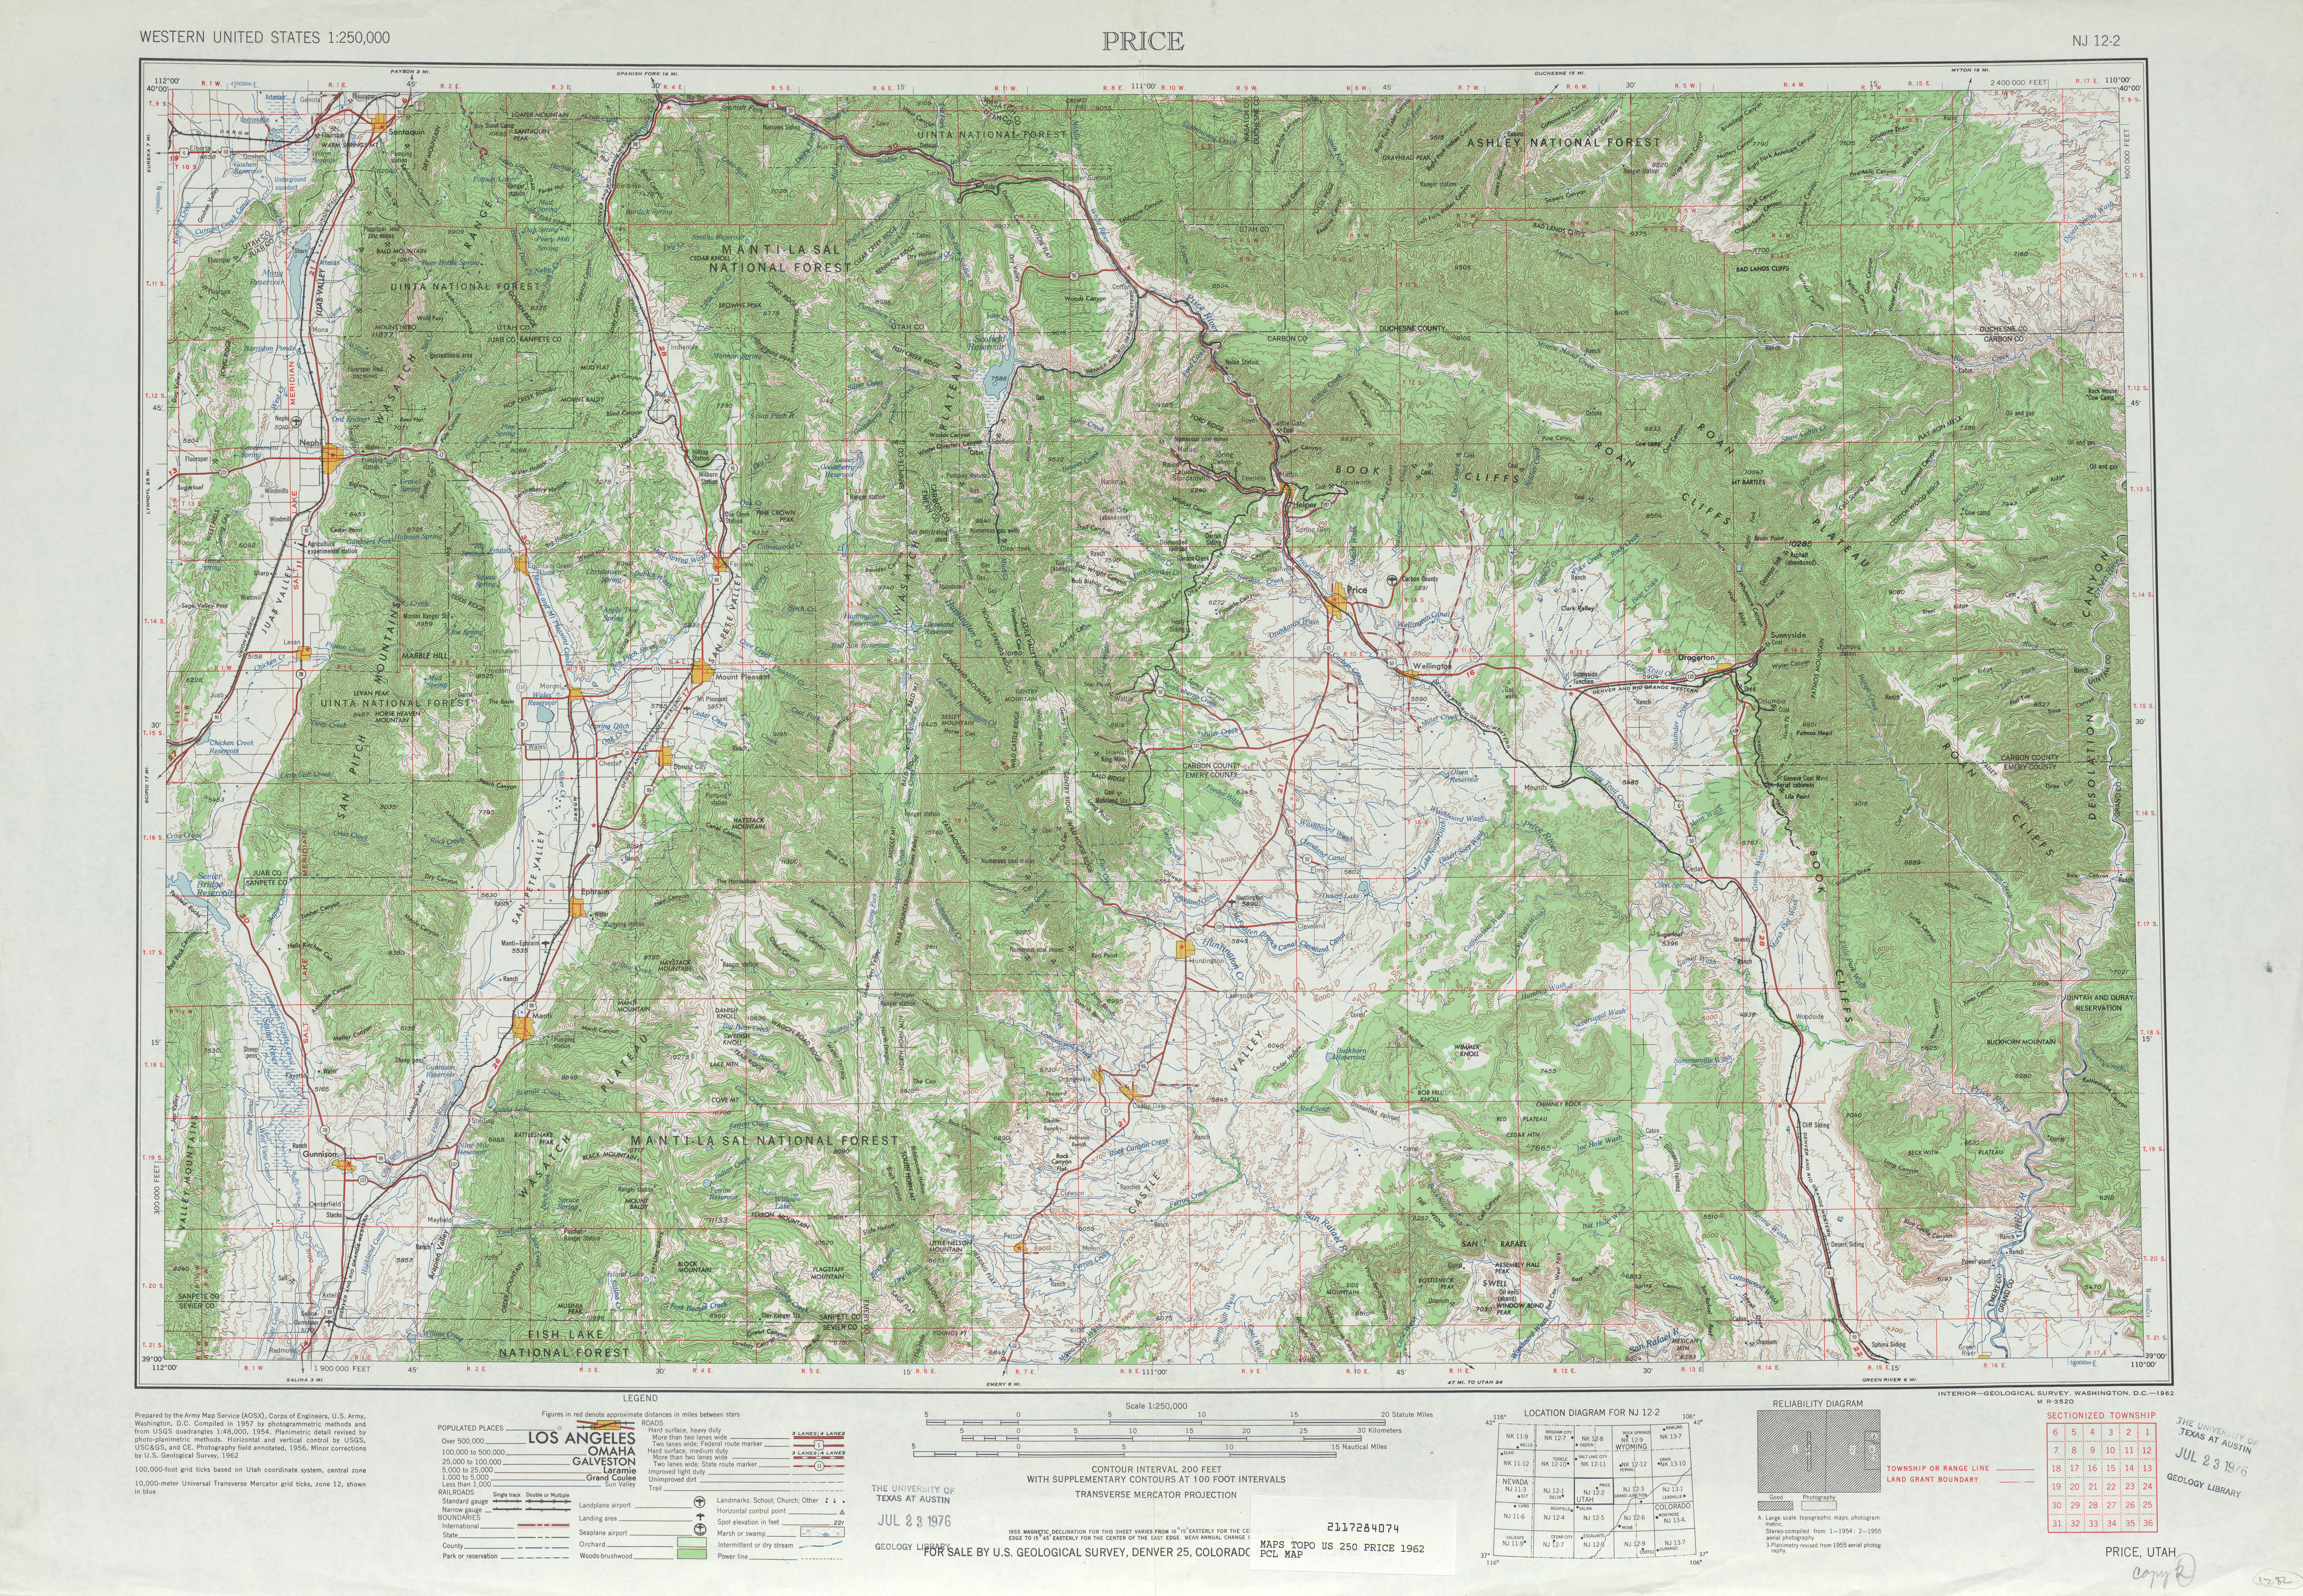 Price Topographic Map Sheet, United States 1962